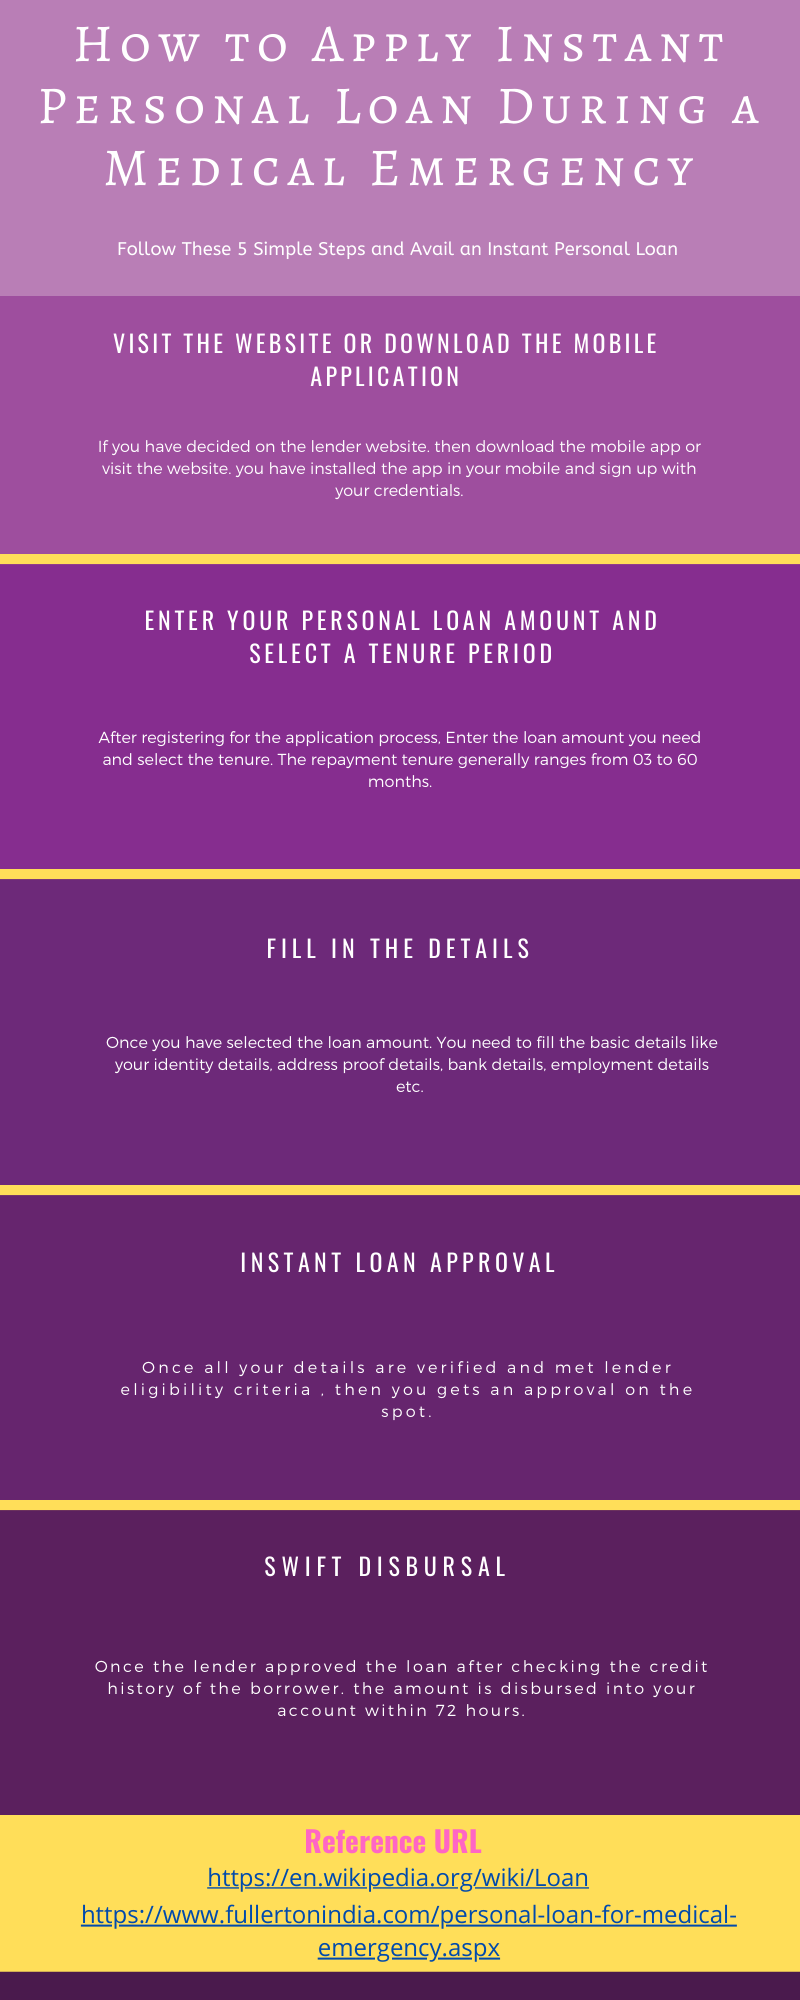 How To Apply Instant Personal Loan During A Medical Emergency In 2020 Personal Loans Medical Loans Emergency Medical